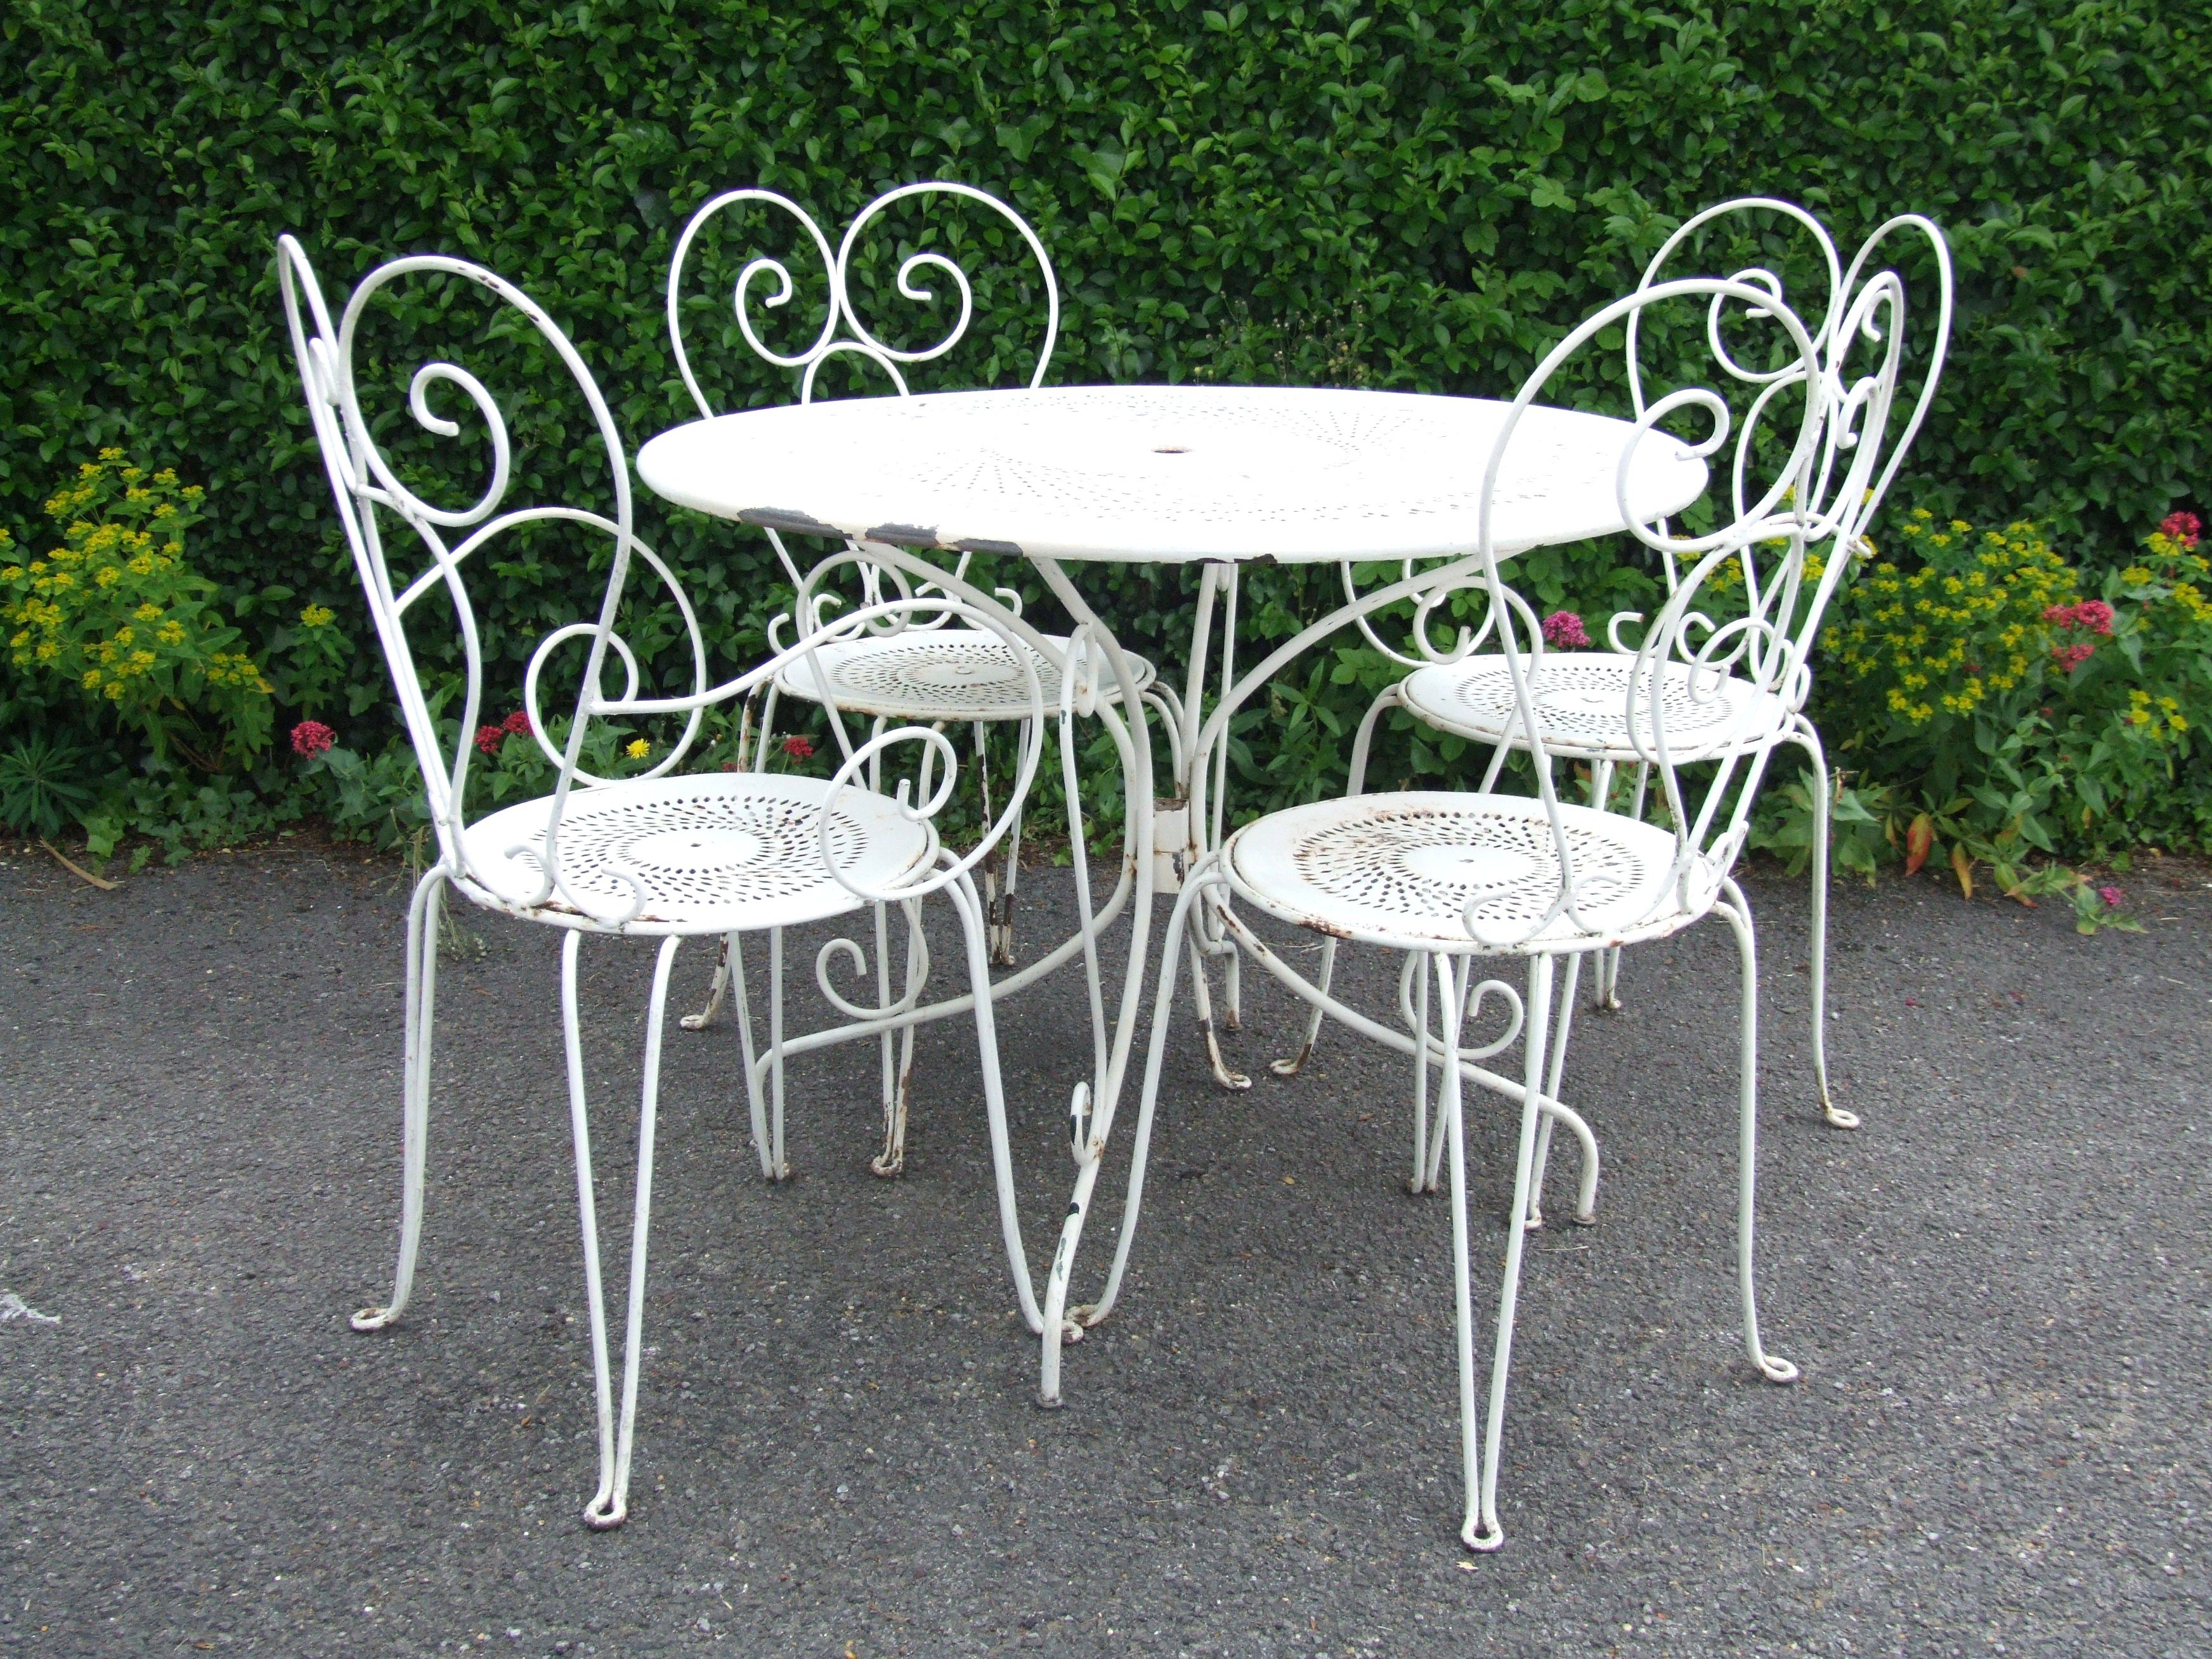 Vintage Wrought Iron Table And Chairs Eisen Gartenmobel